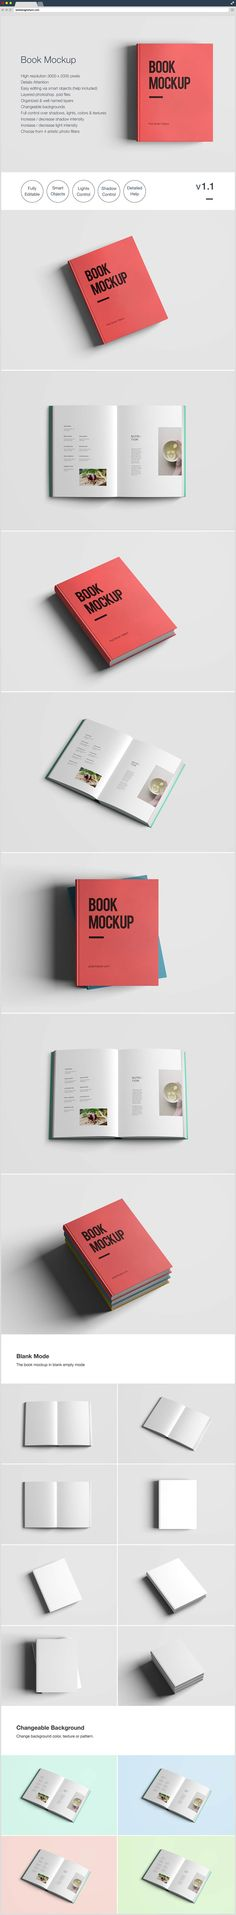 55+ Free PSD Mockups   New and Best 2016 Templates